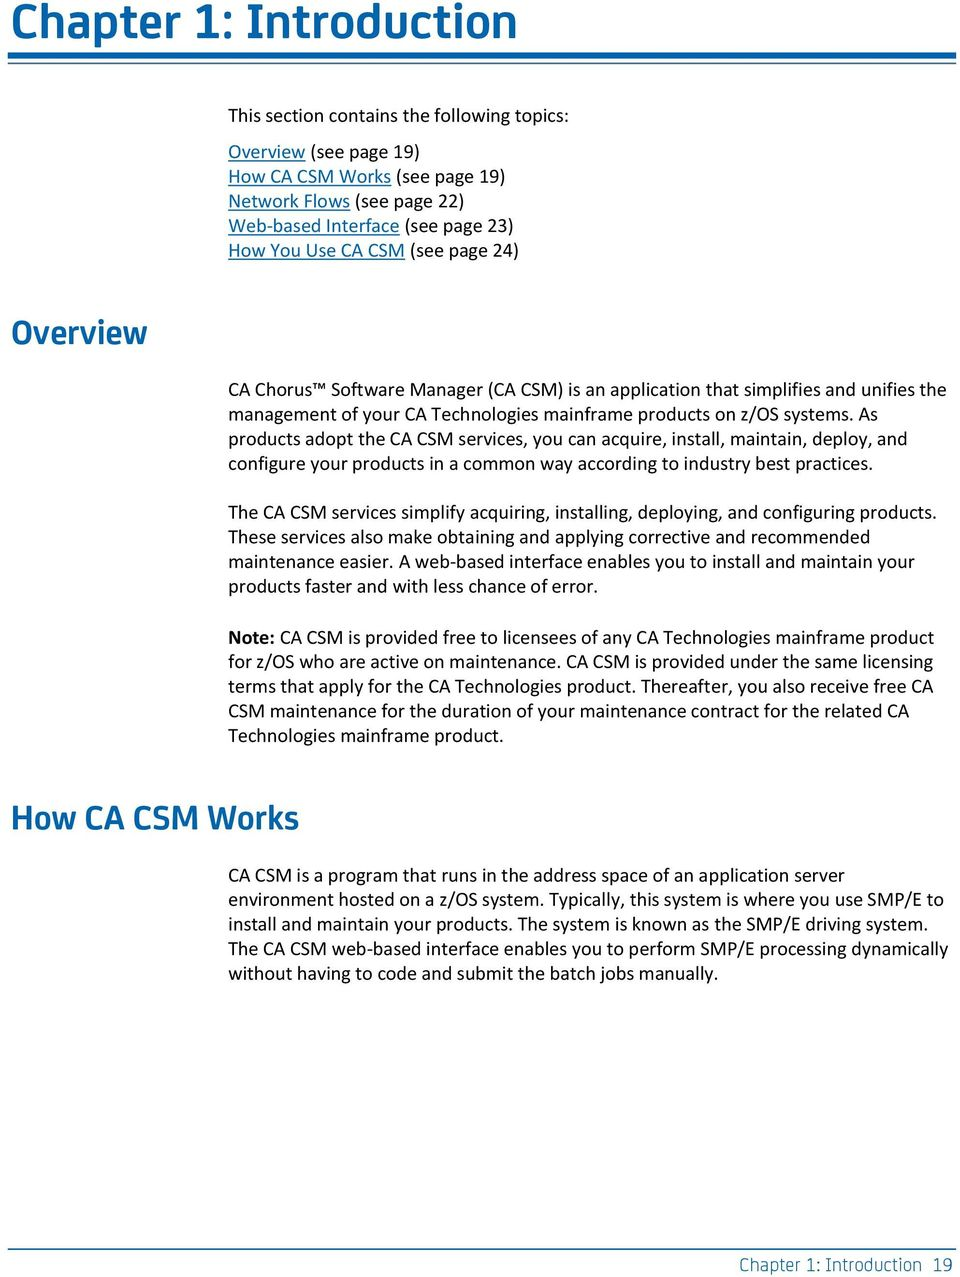 As products adopt the CA CSM services, you can acquire, install, maintain, deploy, and configure your products in a common way according to industry best practices.